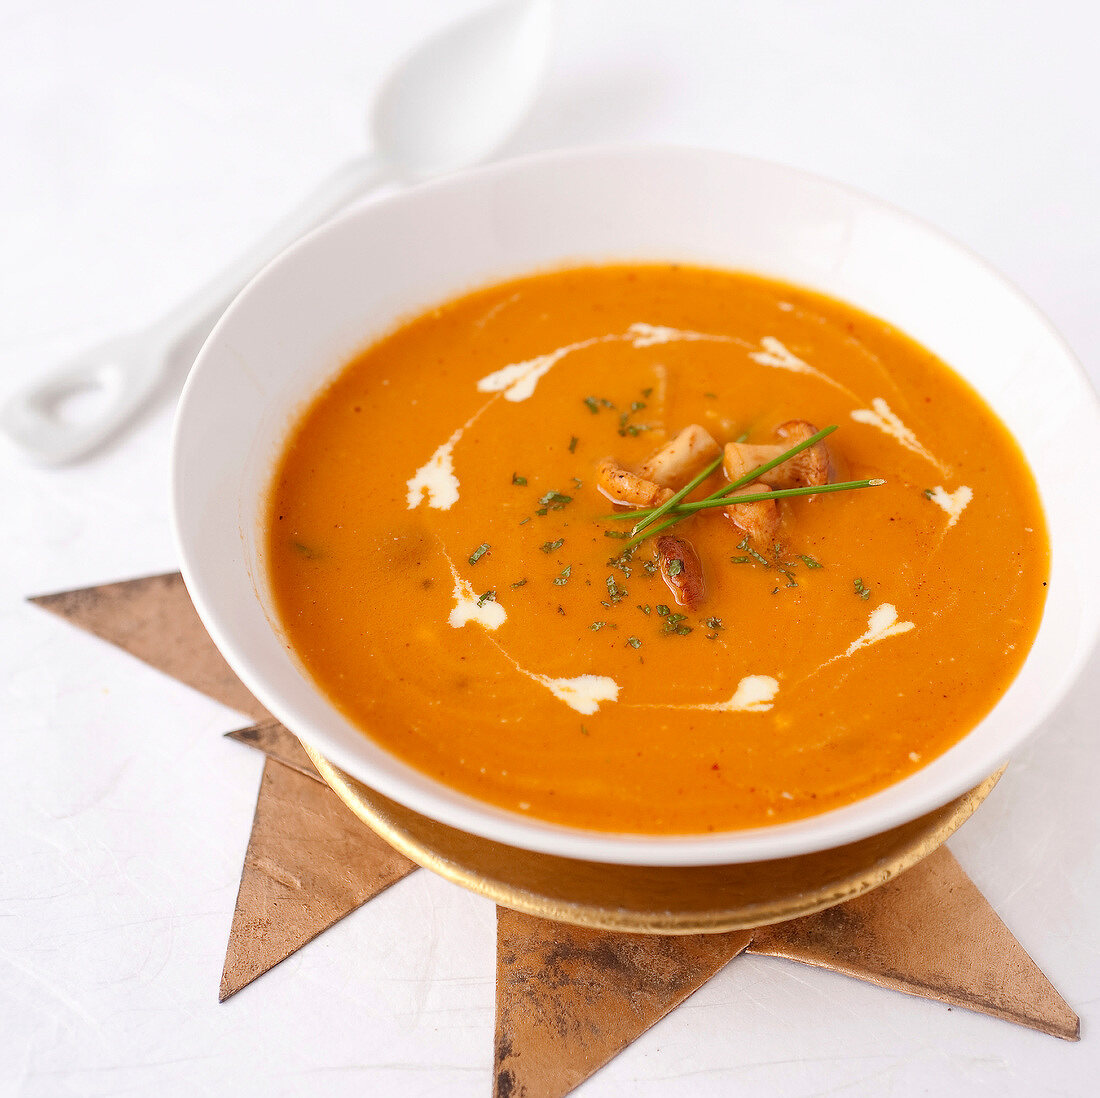 Cream of pumpkin soup with chanterelles and confit chestnuts